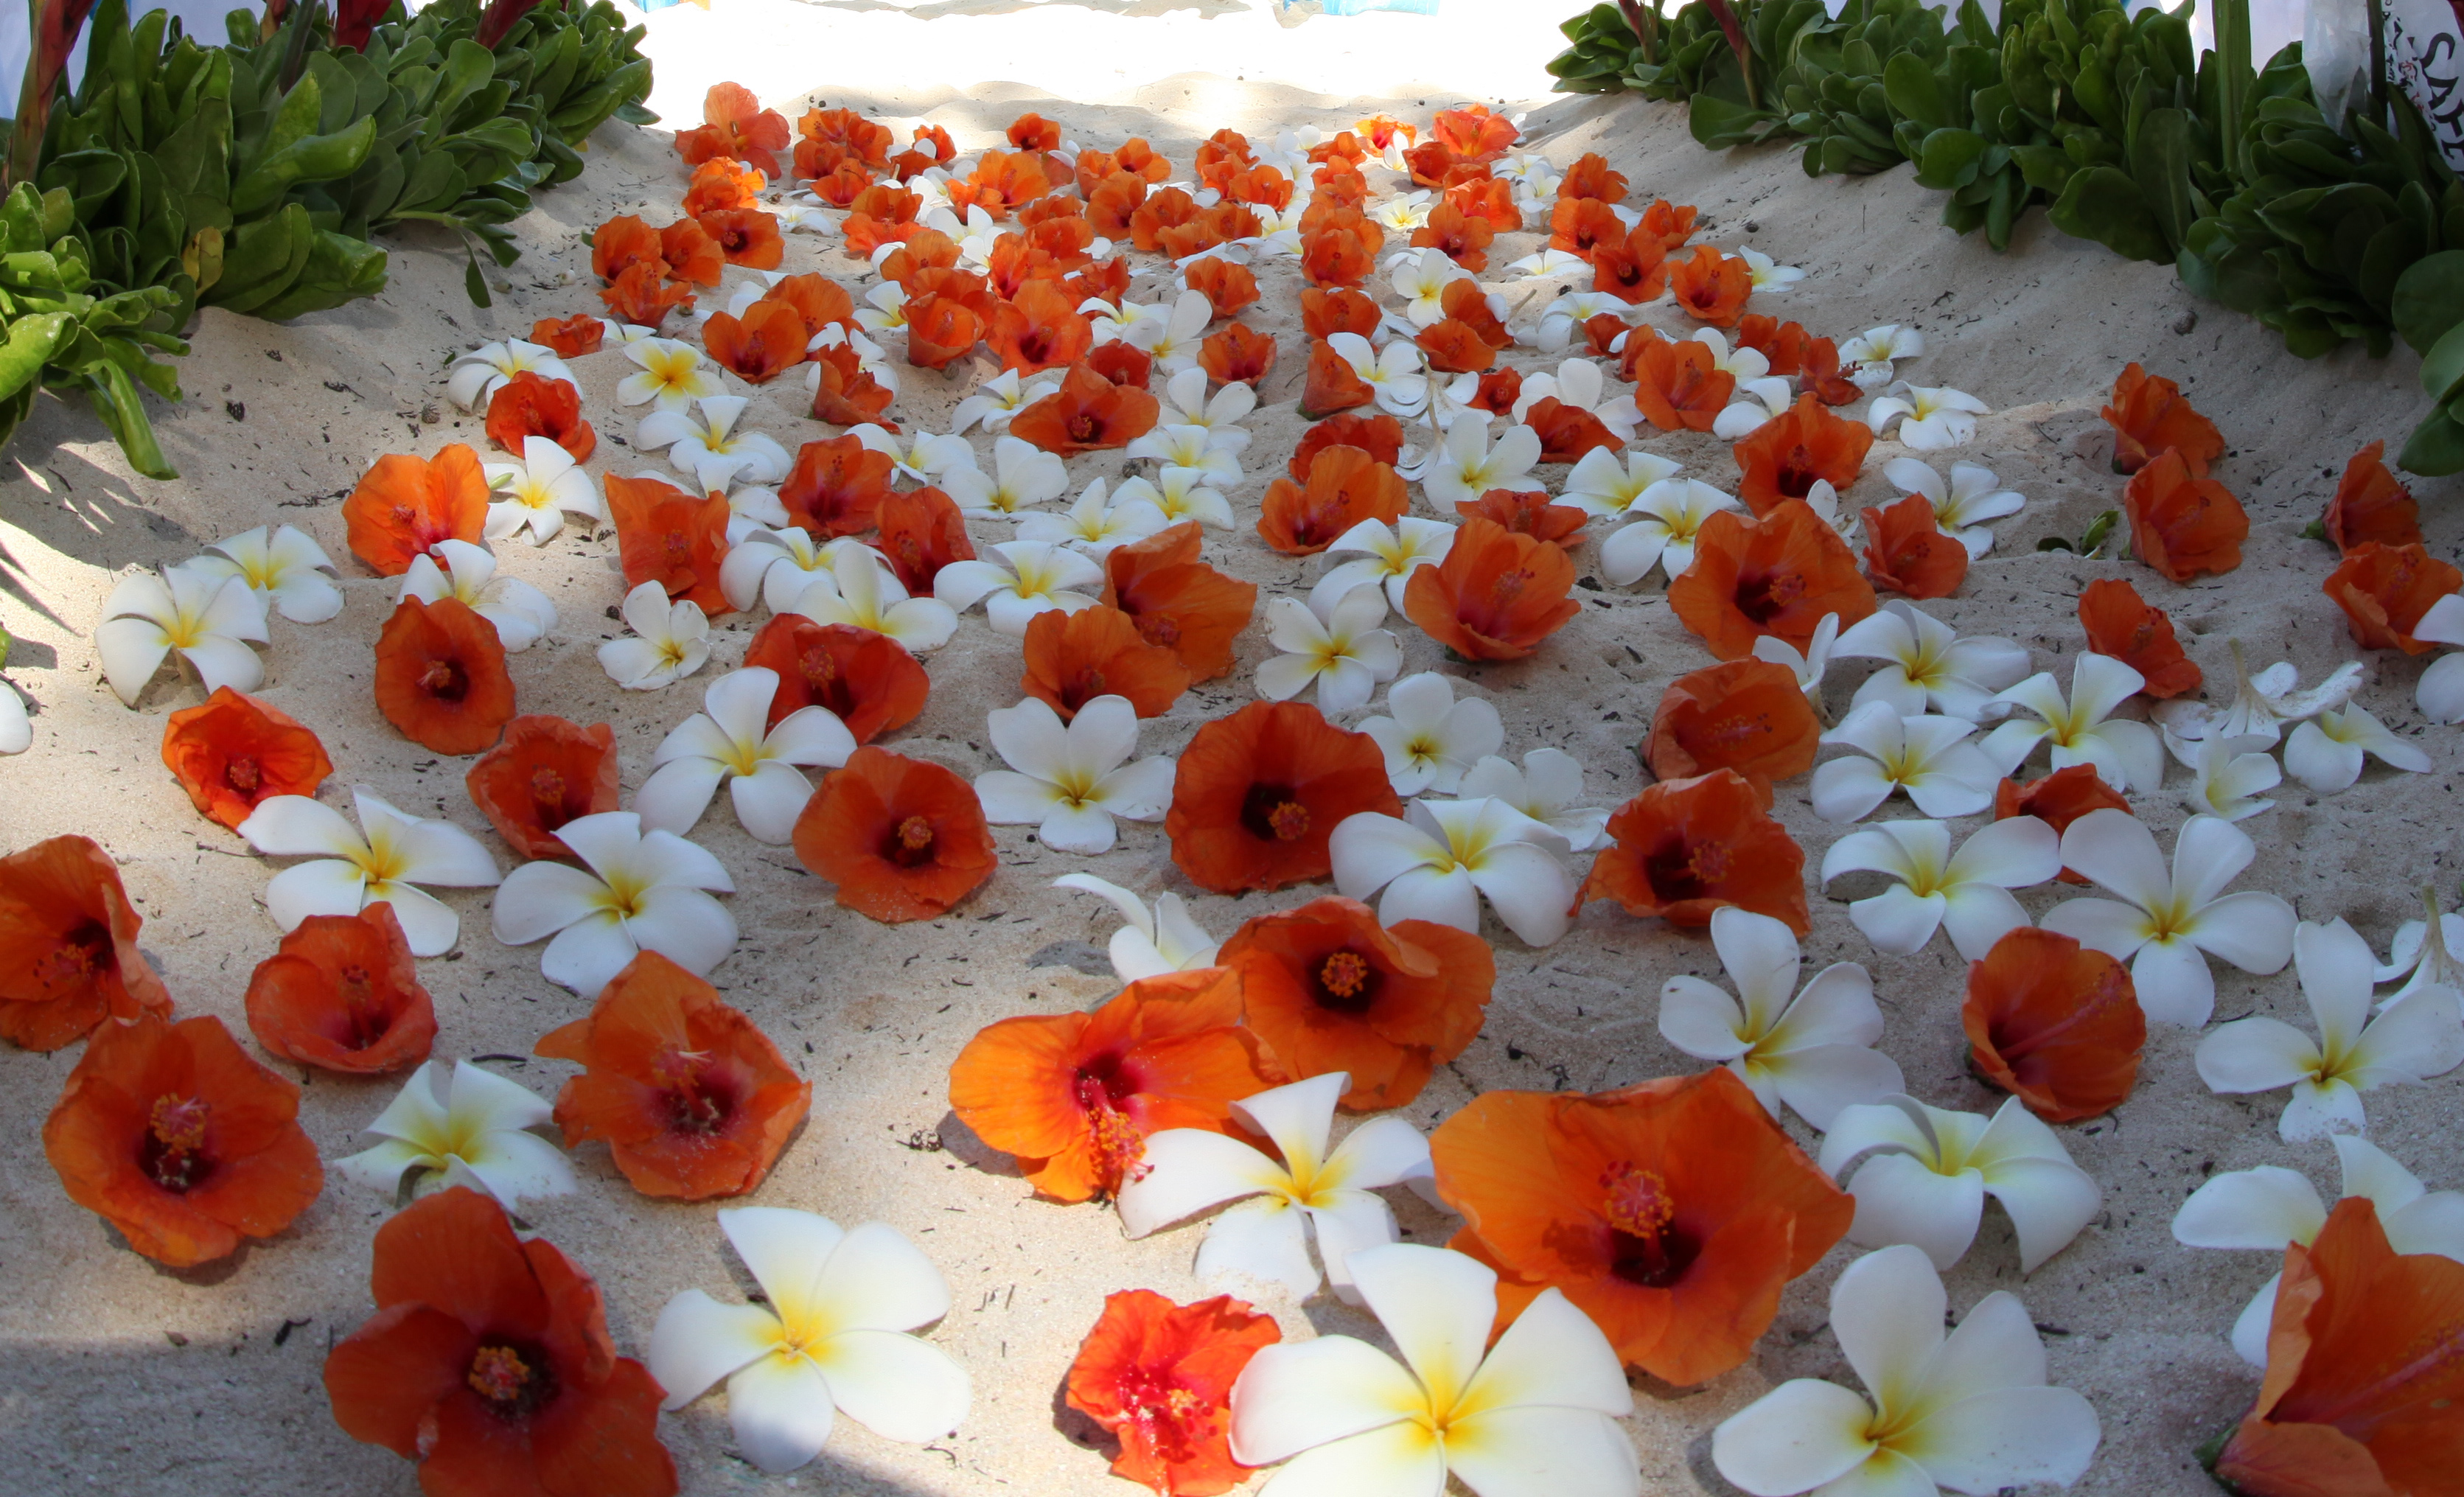 Hibiscus As A Wedding Flower The Many Variety Of Uses Hawaii